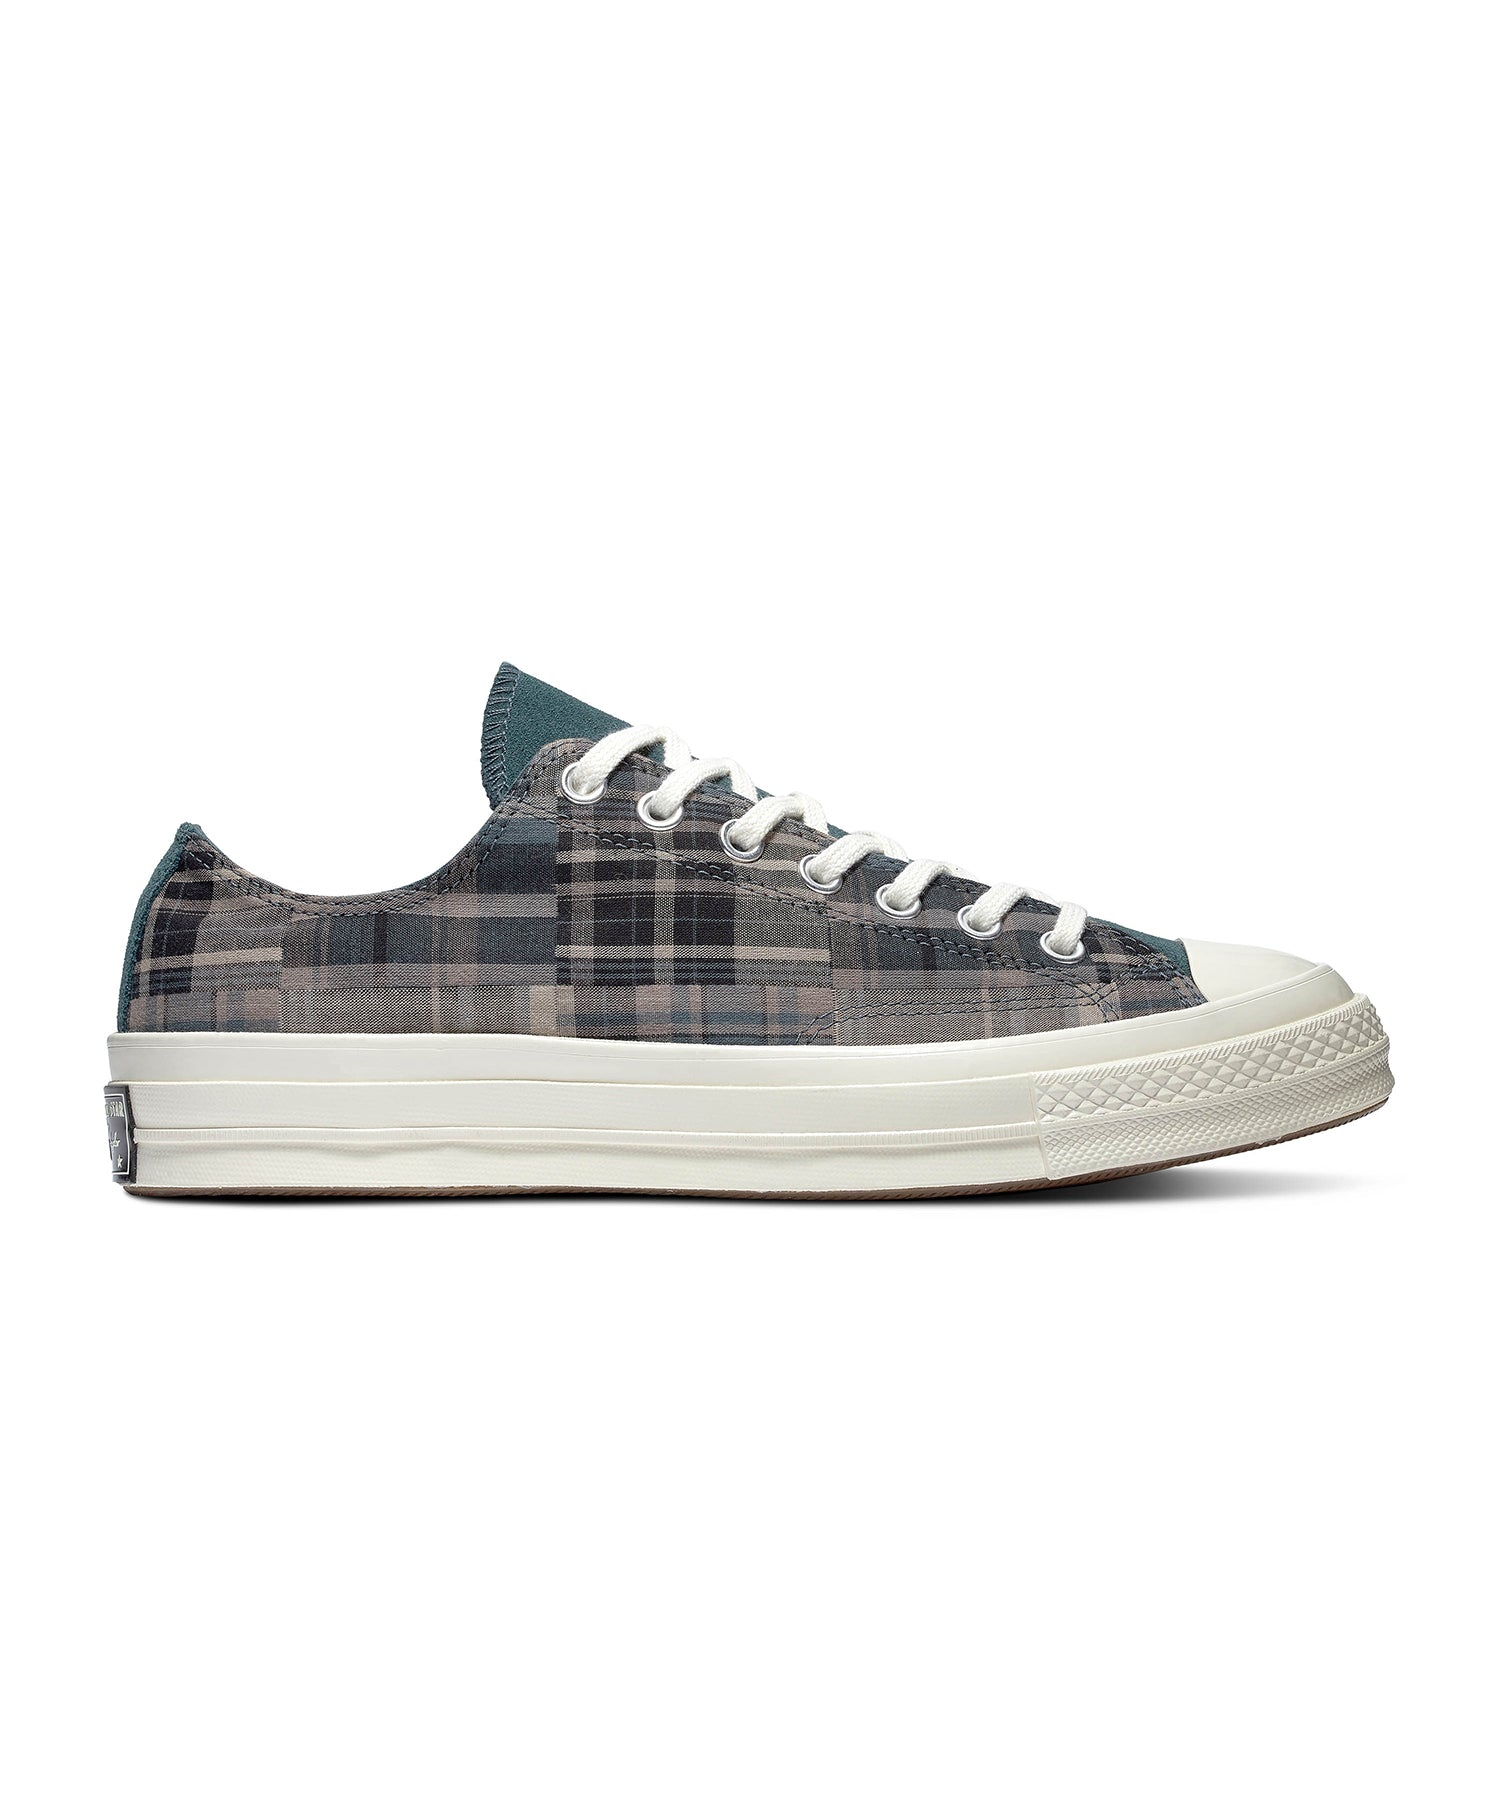 Converse Twisted Prep Chuck 70 in Woven Ox